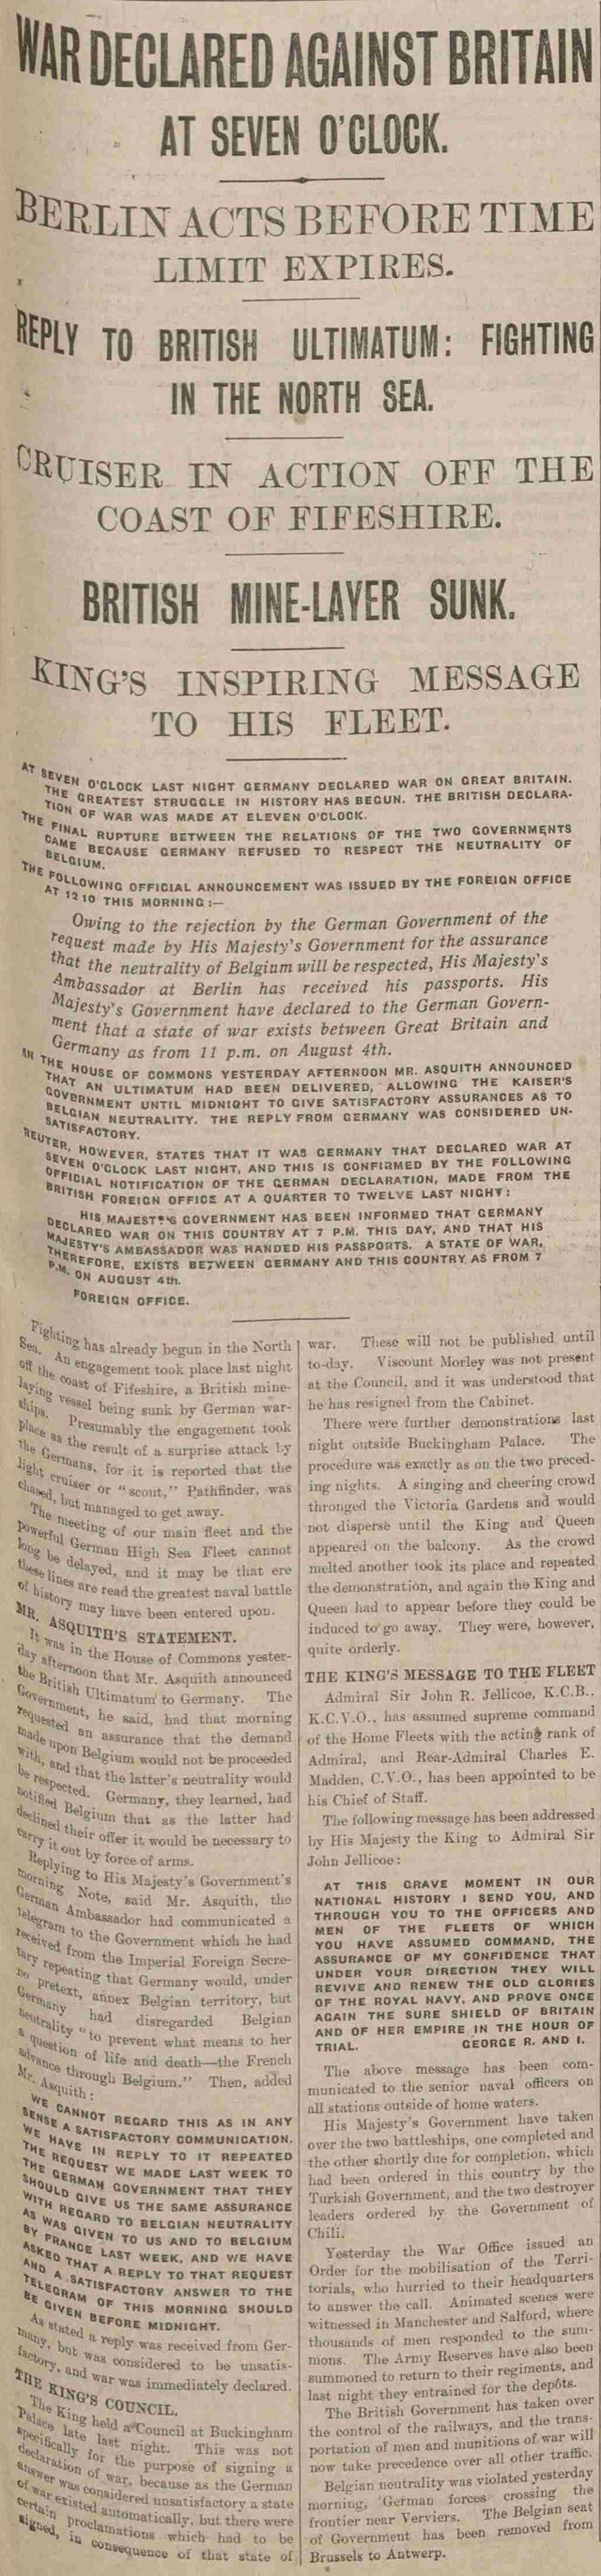 The Manchester Courier reported that Germany had declared war on Britain first during the First World War